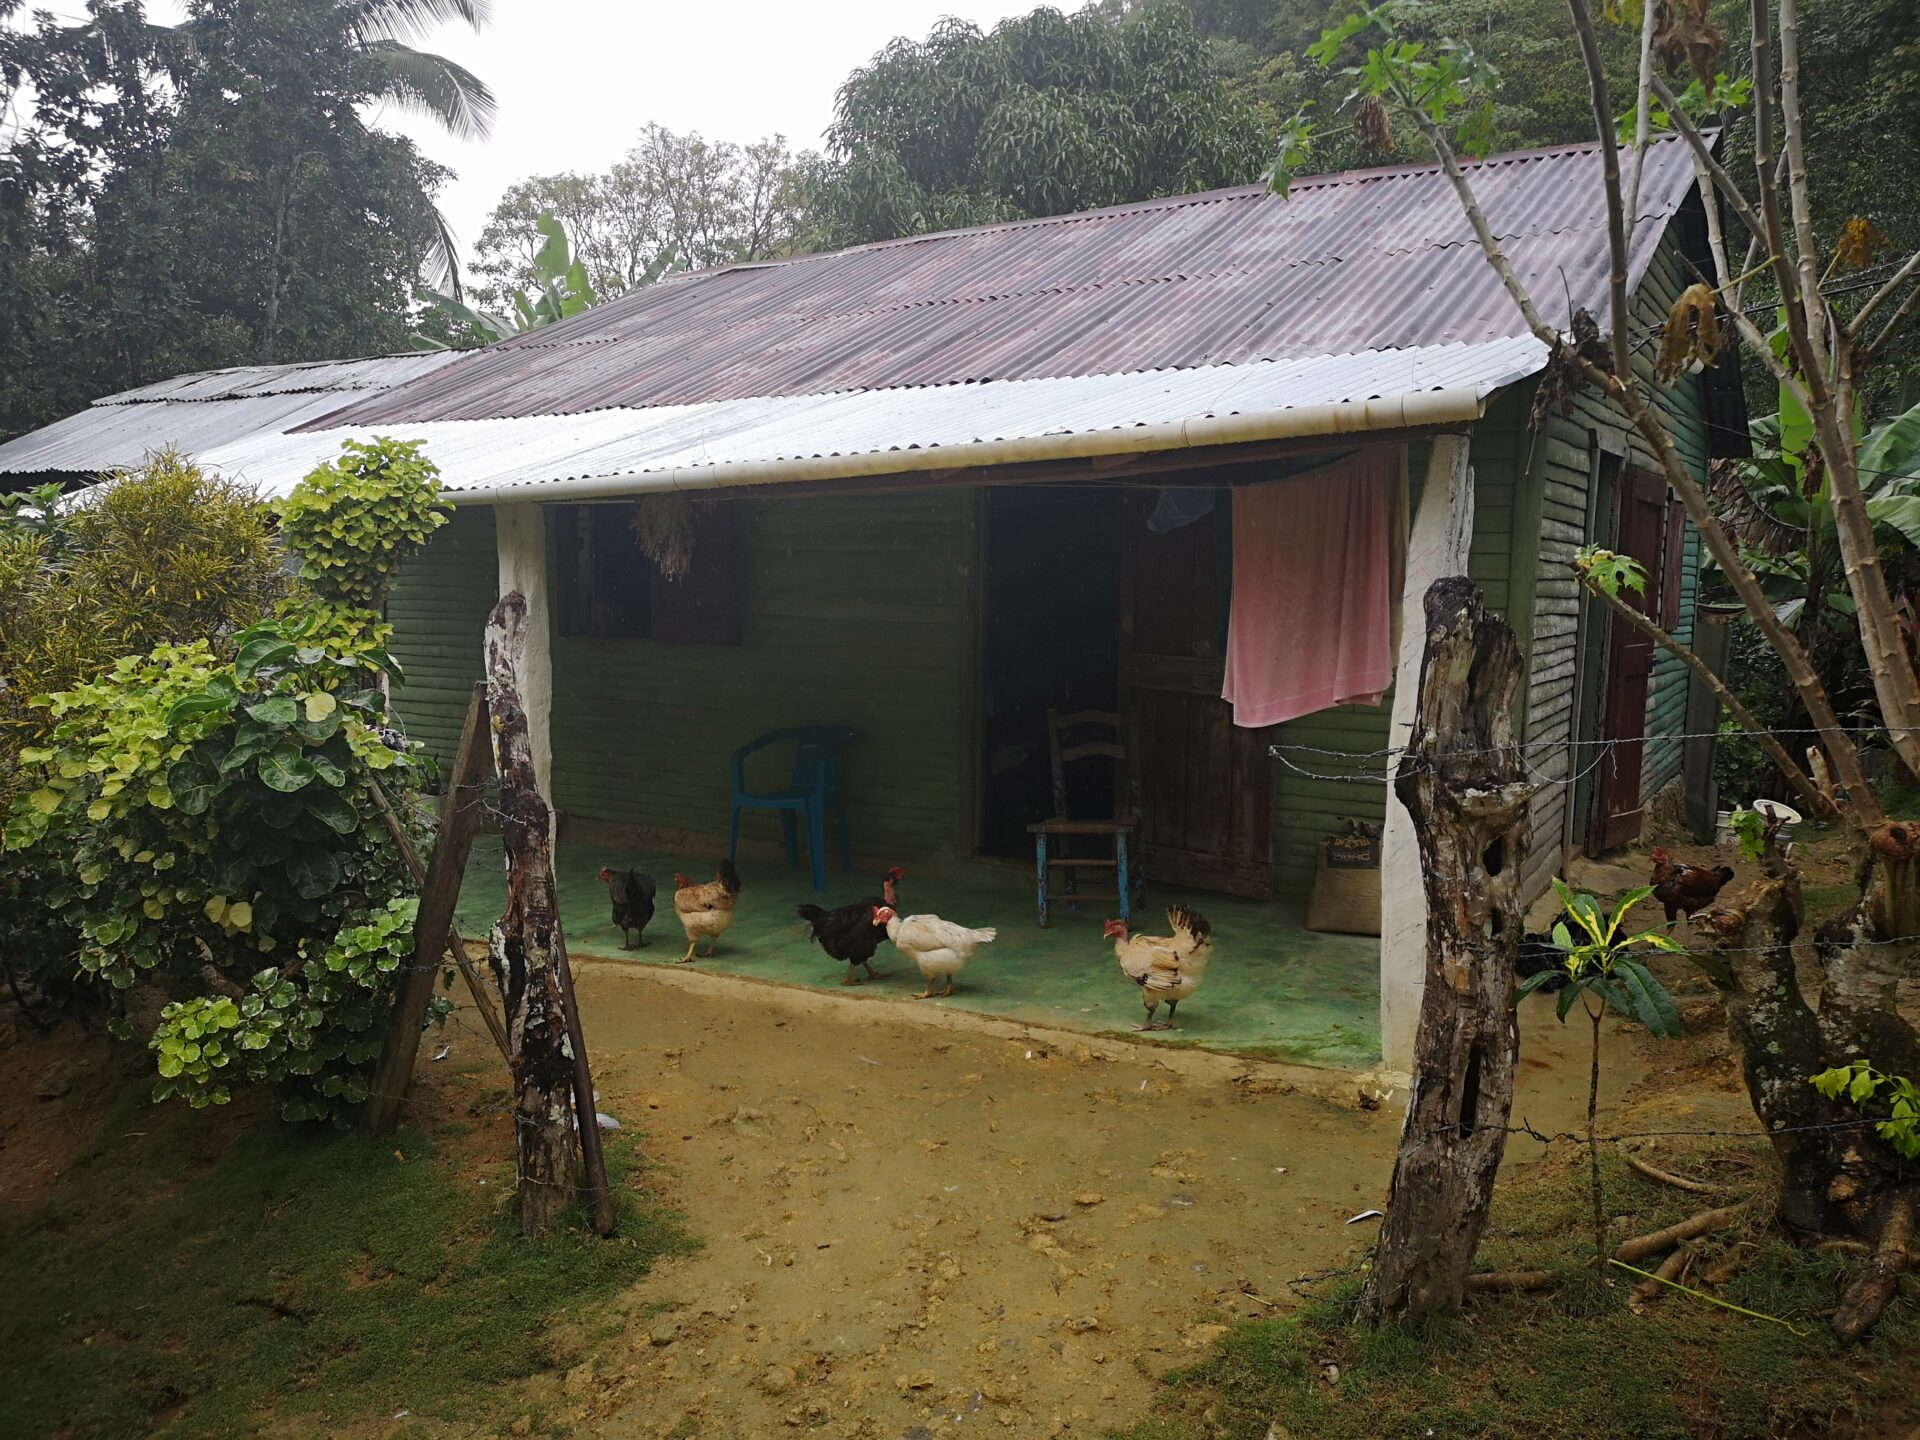 Tin roof house with chickens